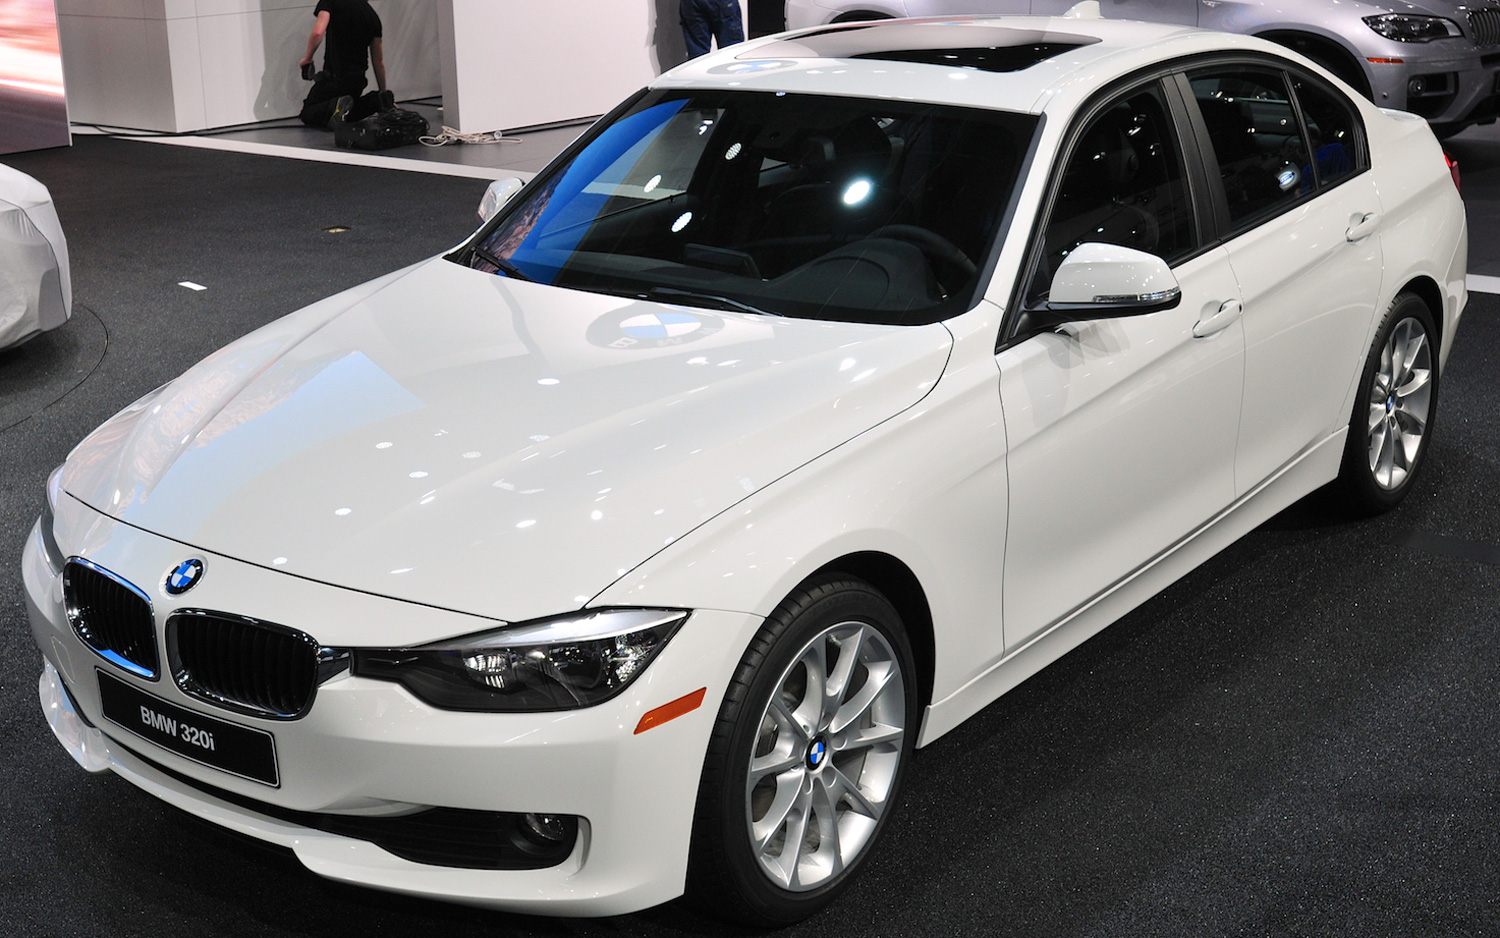 2013 BMW 320i Packs 180-HP Turbo | New cars reviews